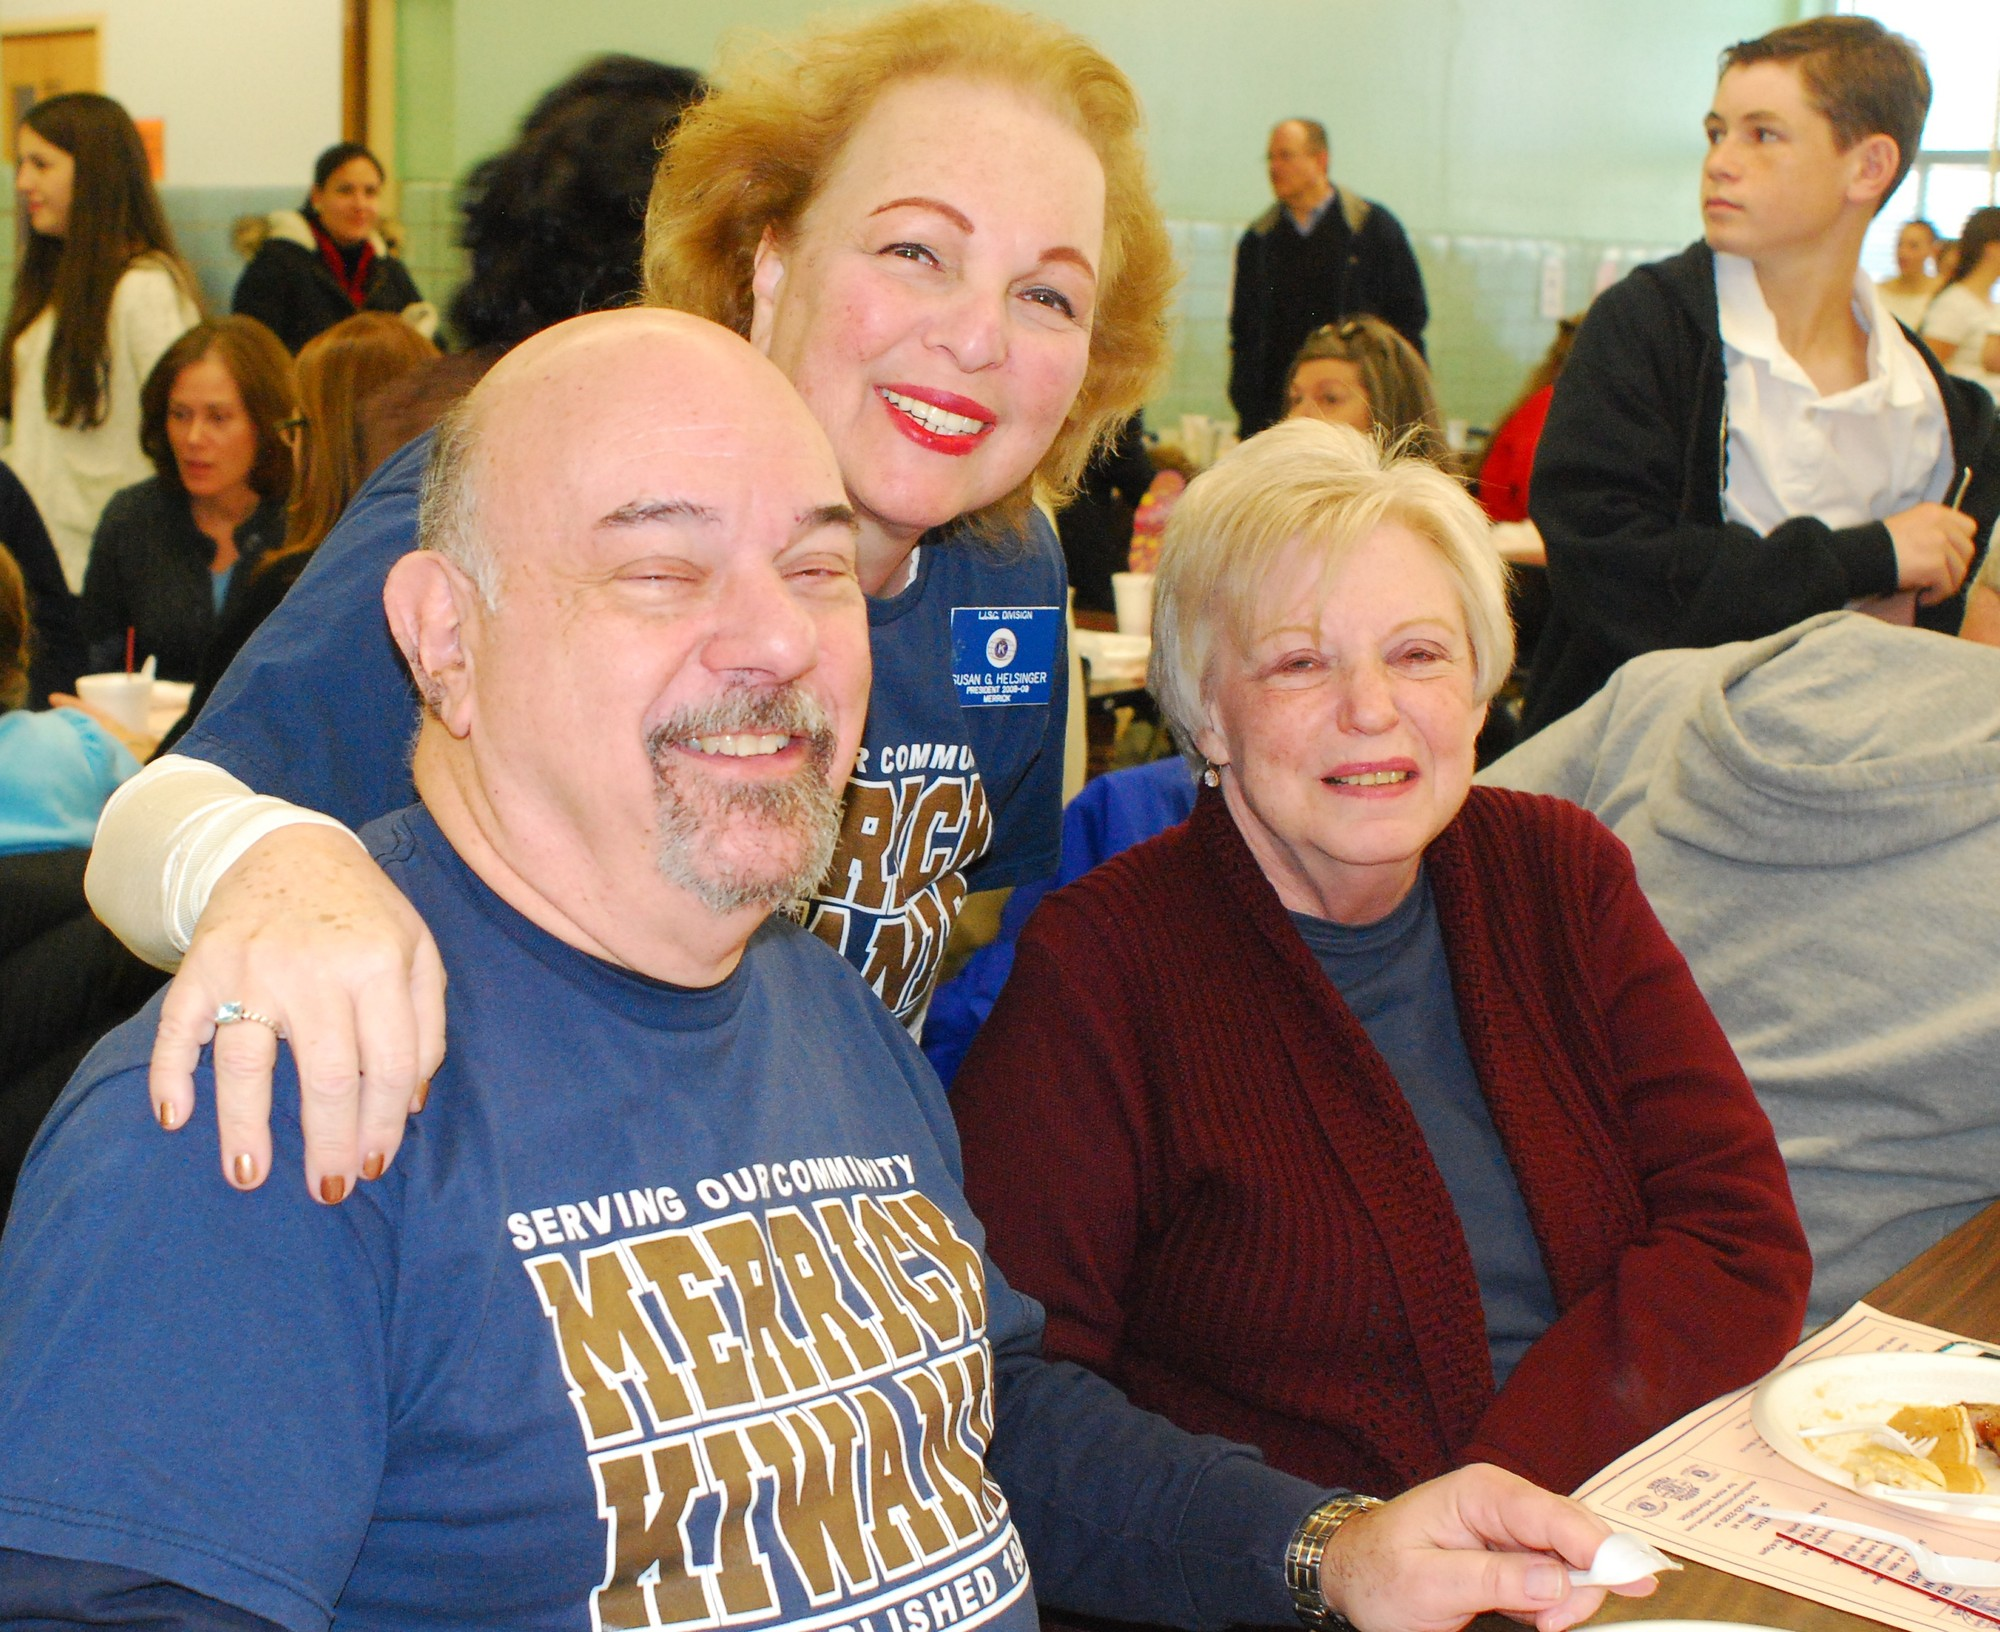 Kiwanian Bernie Stein and his wife, Marlene, right, enjoyed their breakfast. They were joined by, at back, Kiwanian Susan Helsinger.